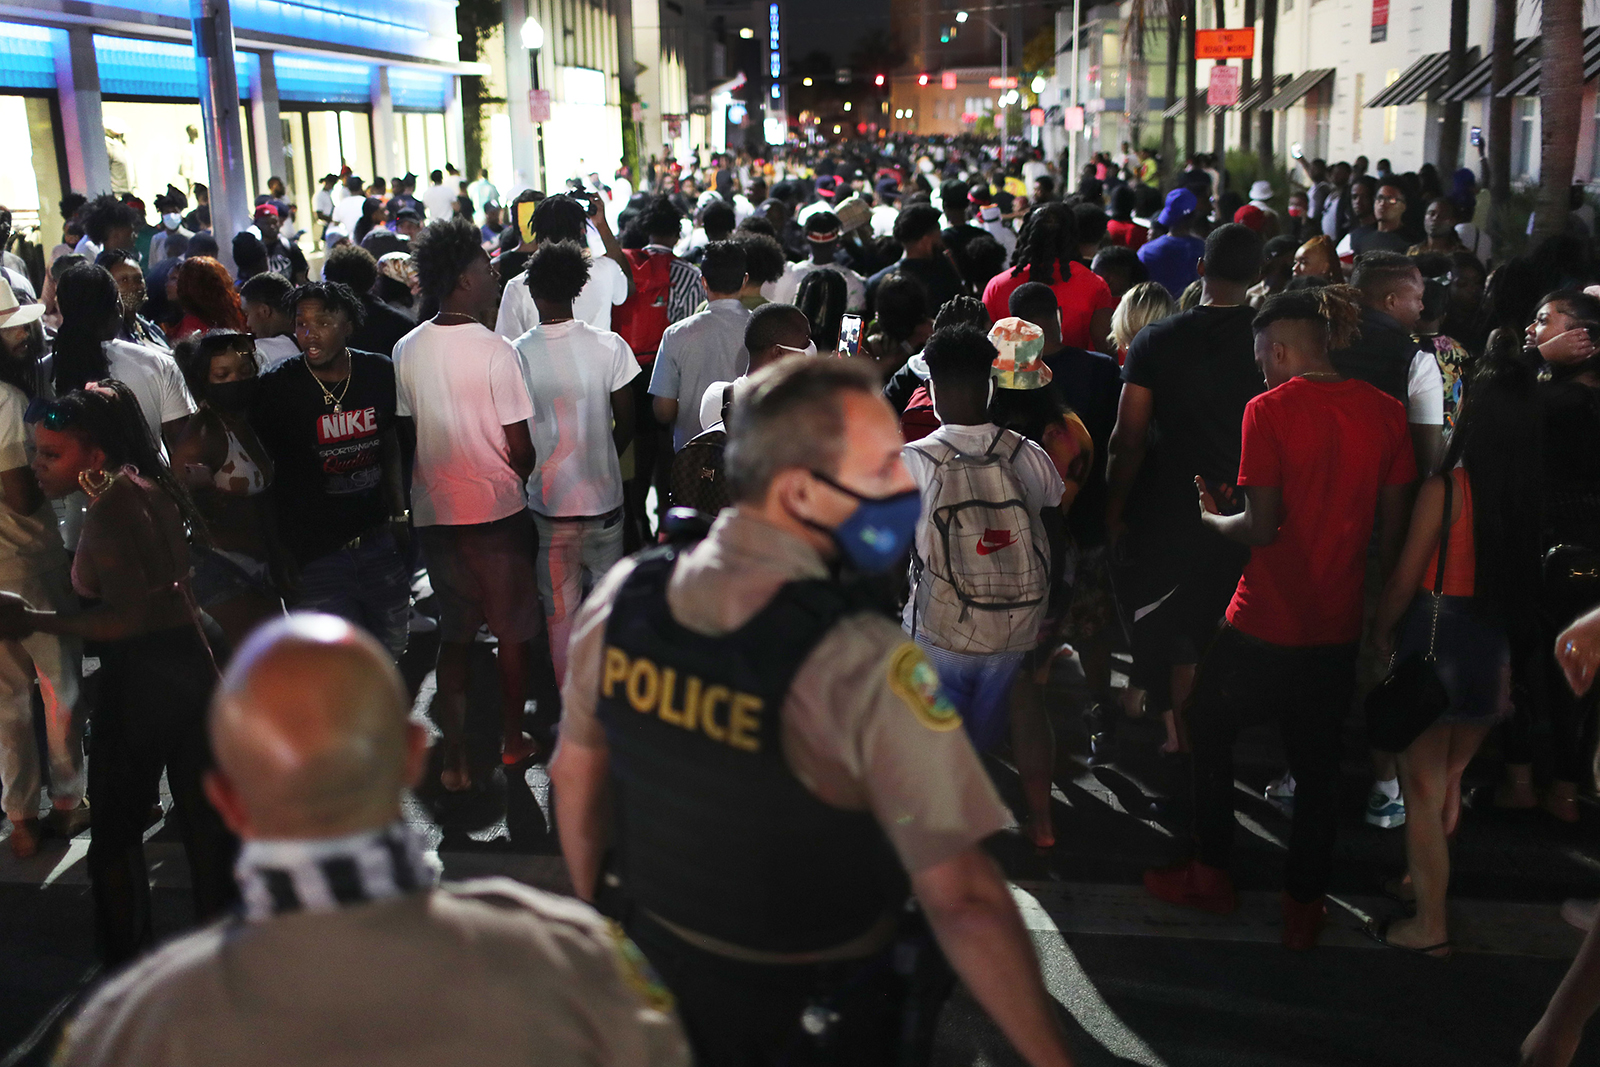 People leave the area as an 8pm curfew goes into effect in Miami Beach, Florida, on March 21.